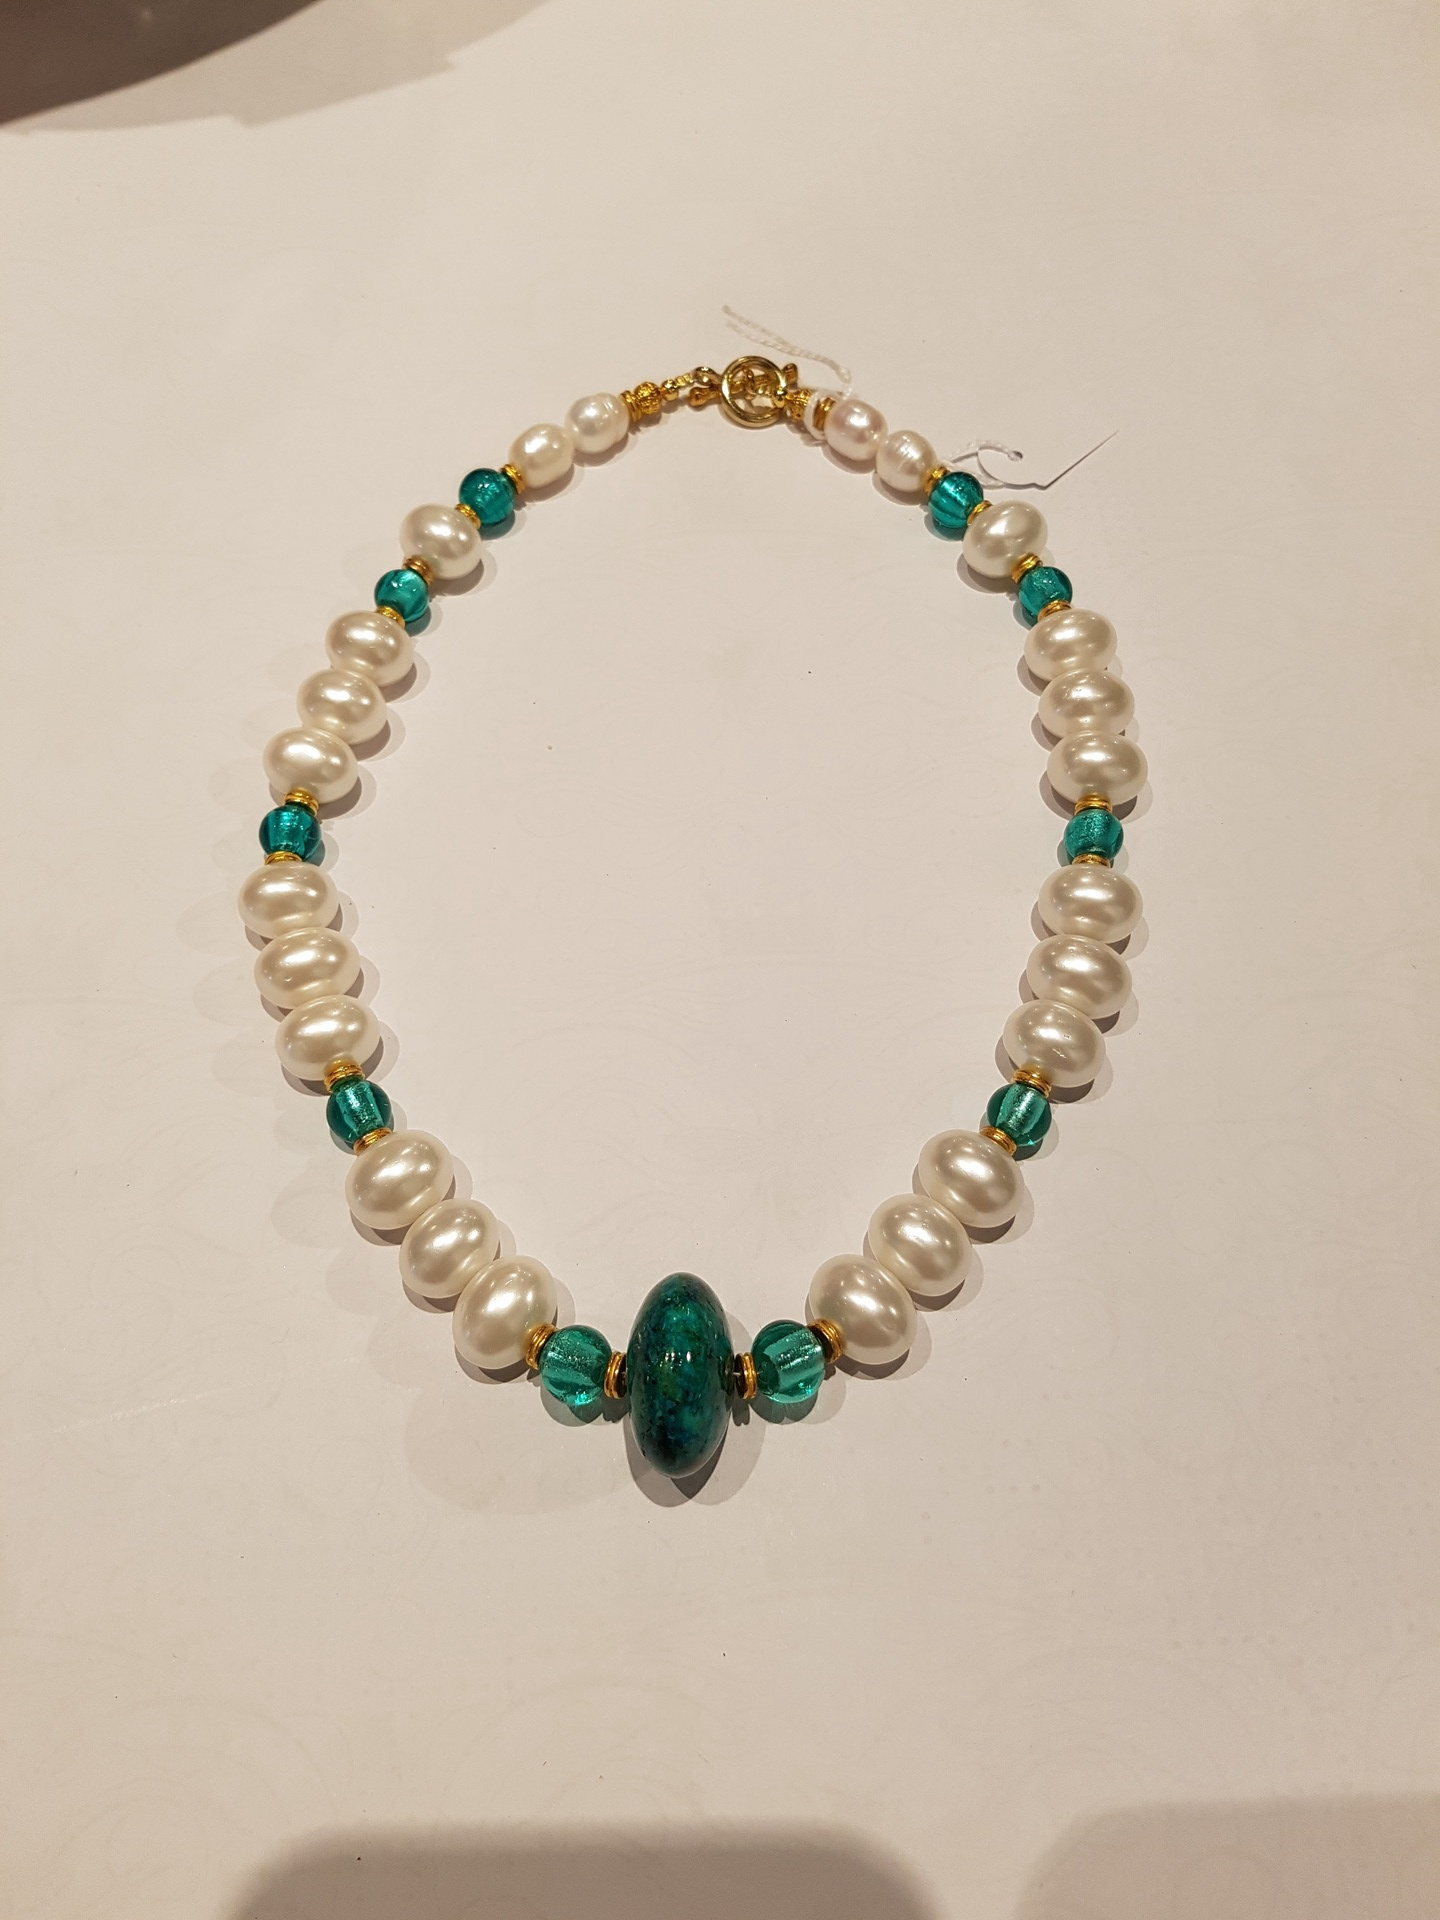 Fresh Water Pearl Necklace with Handmade Turquoise Glass Centre Bead